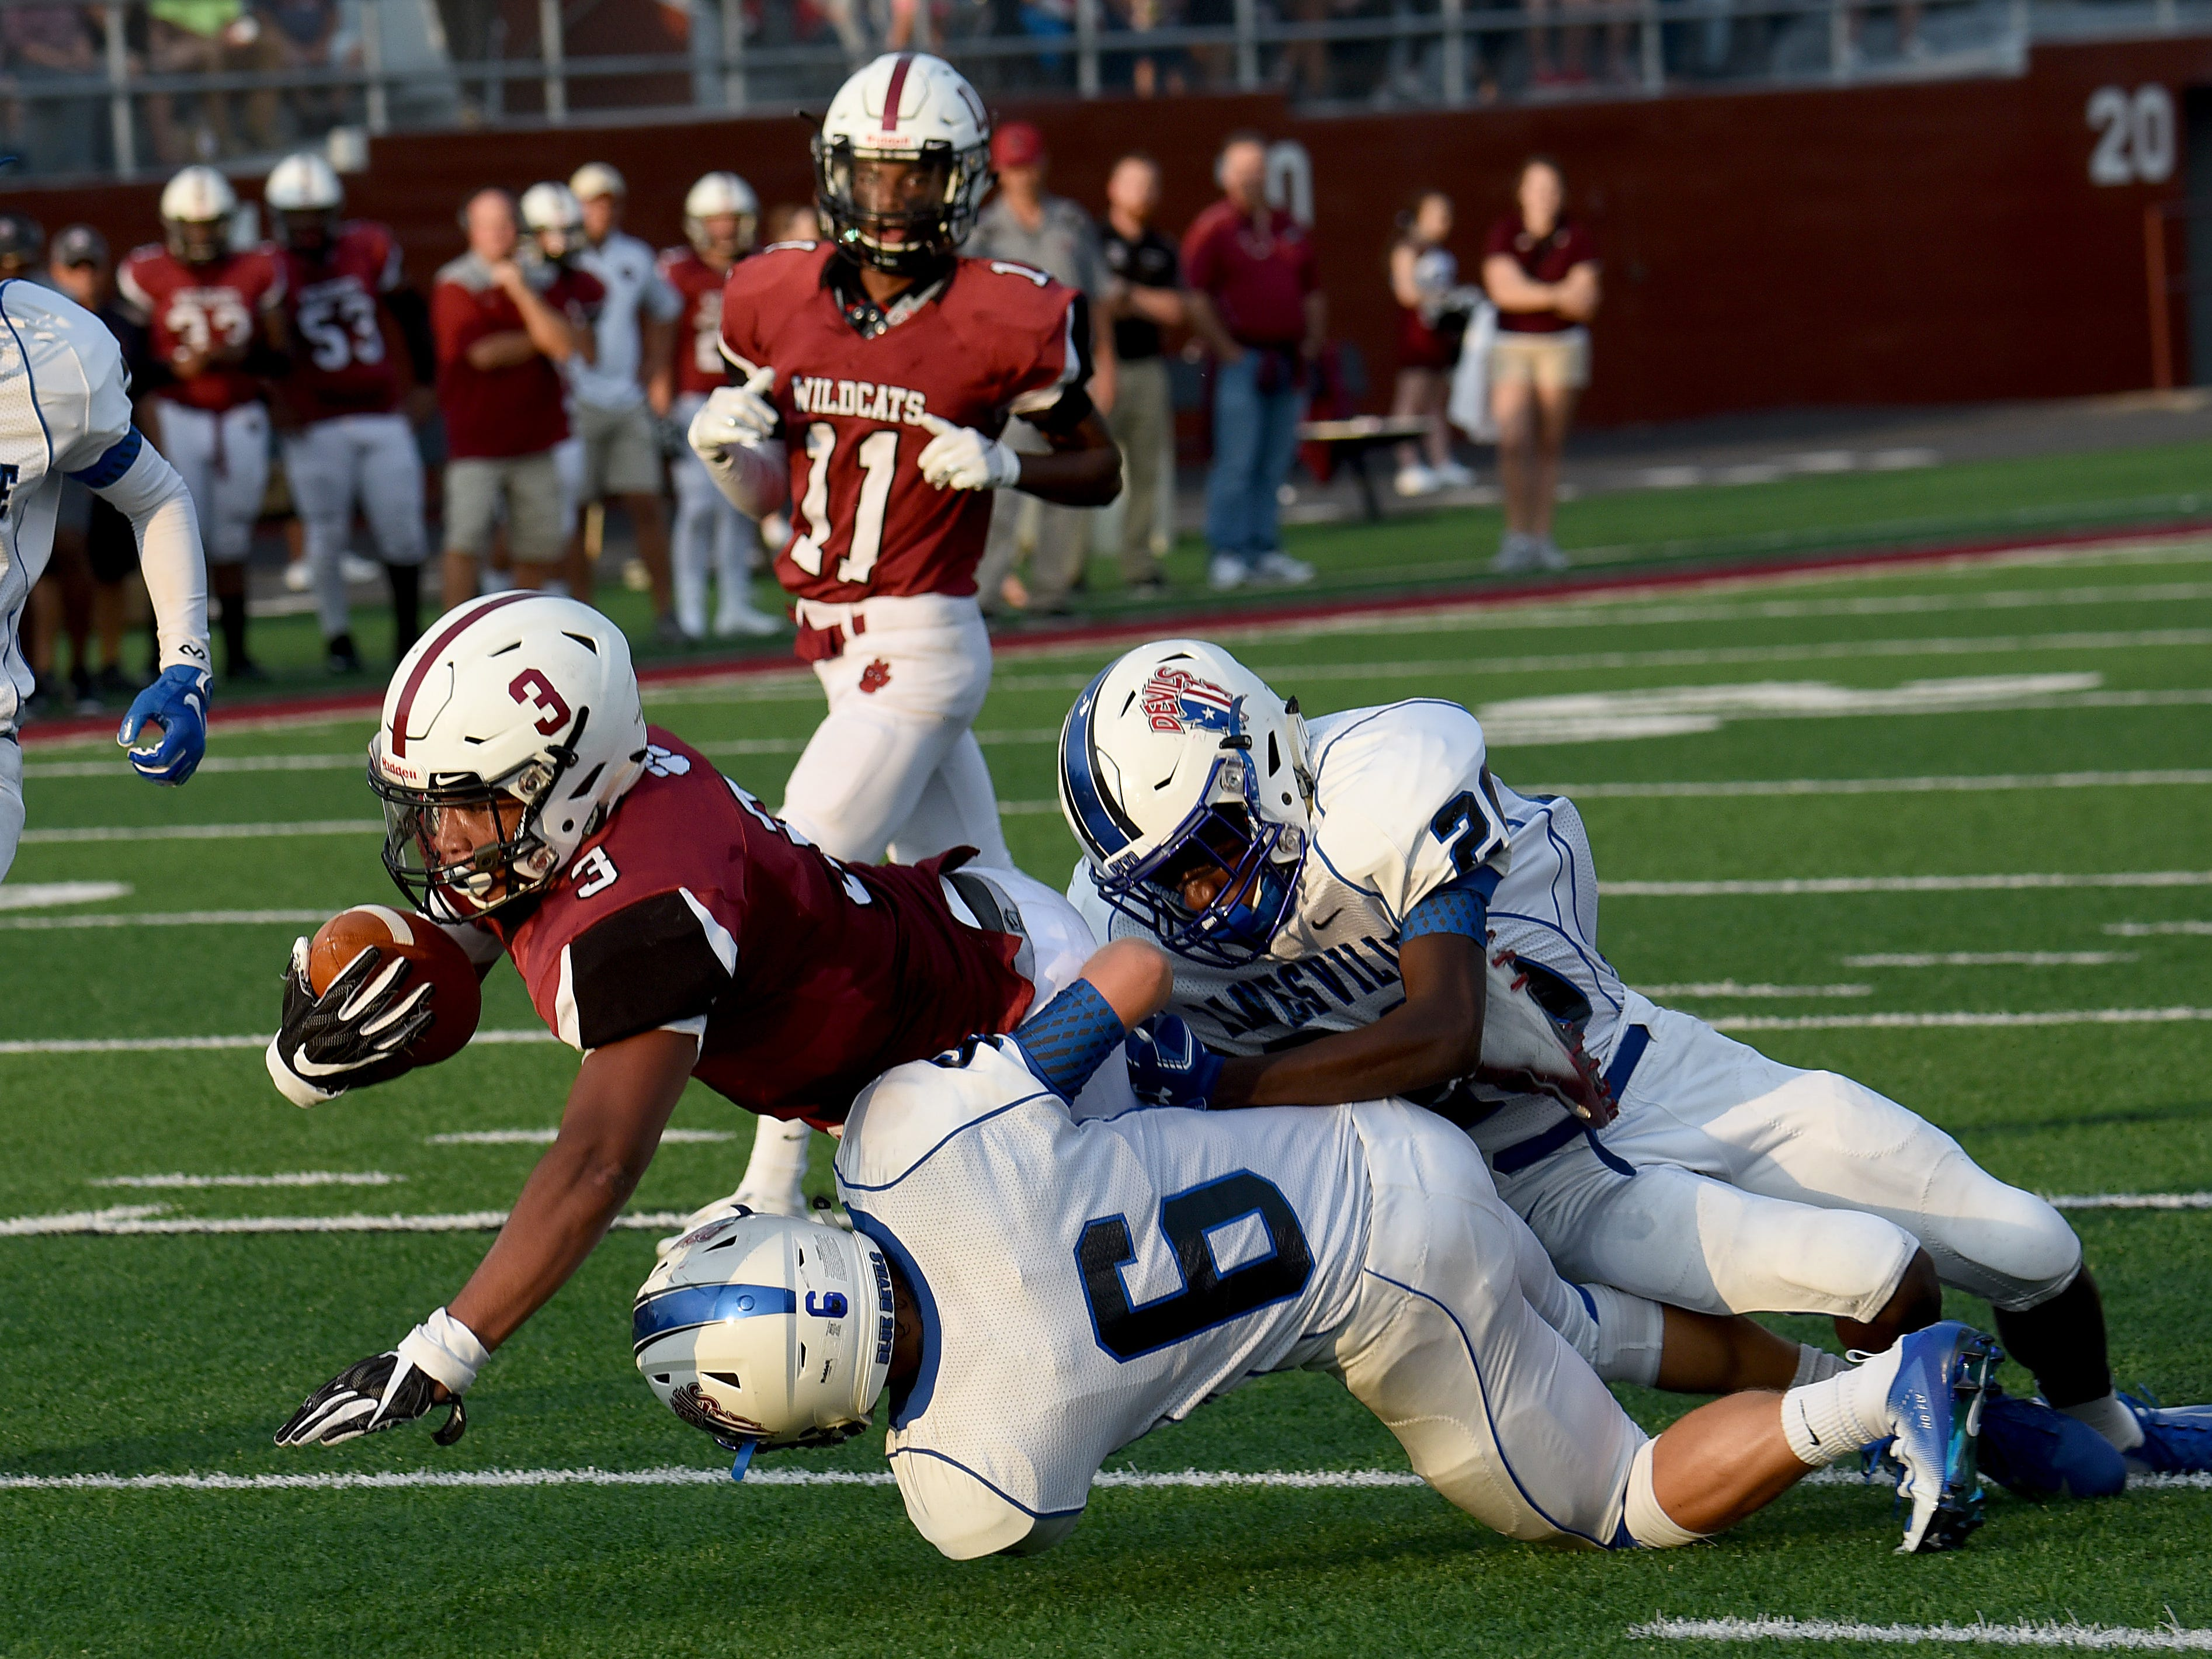 Newark senior running back Davian Williams reaches for yardage as he is brought down by Zanesville defenders senior Slade Norris and junior Jamal Wiggins during Friday night's season opening game at White Field in Newark. The Blue Devils defeated the Wildcats 32-27.